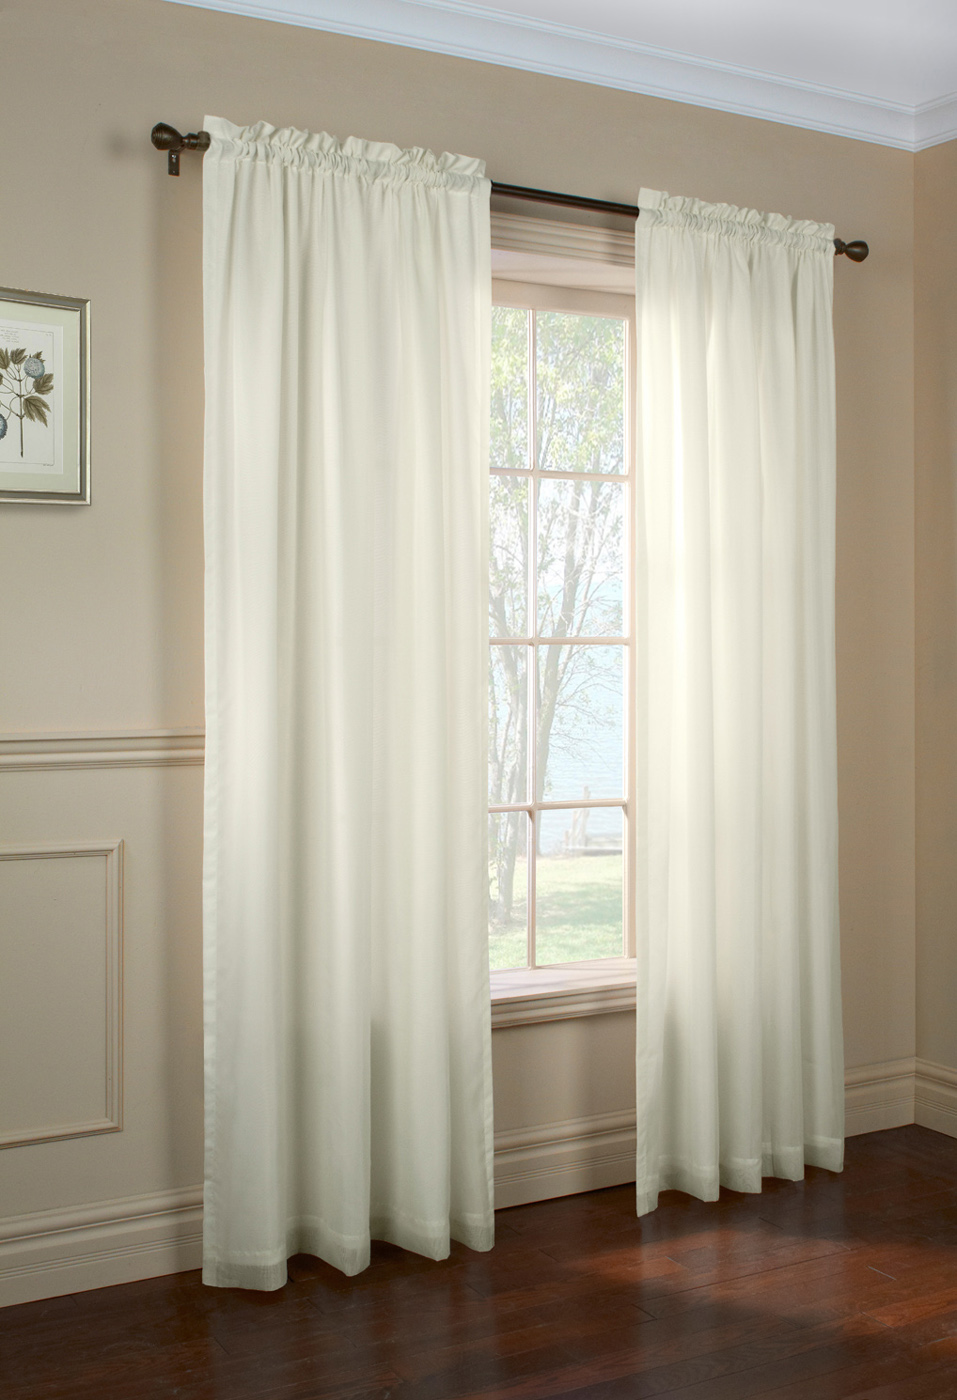 treatments panels curtains lace ideas classy x panel curtain window scroll ivory